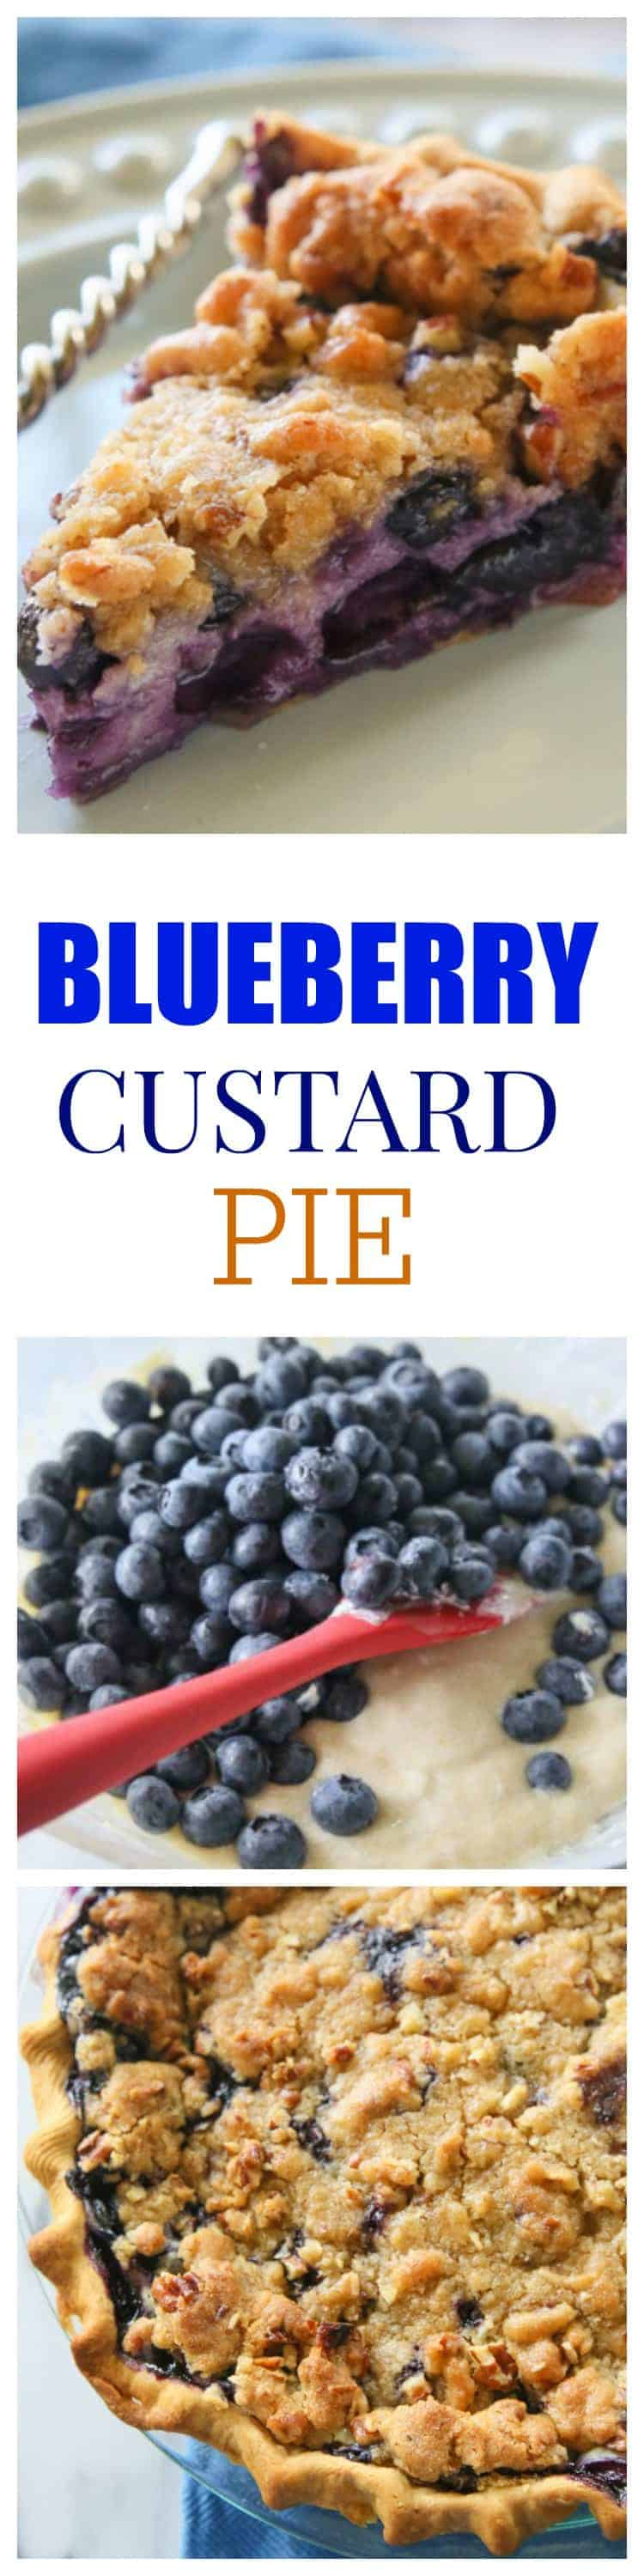 Blueberry Custard Pie is a twist on the classic blueberry pie with a creamy custard filling and topped with a crunchy streusel. #blueberry #custard #pie #summer #dessert